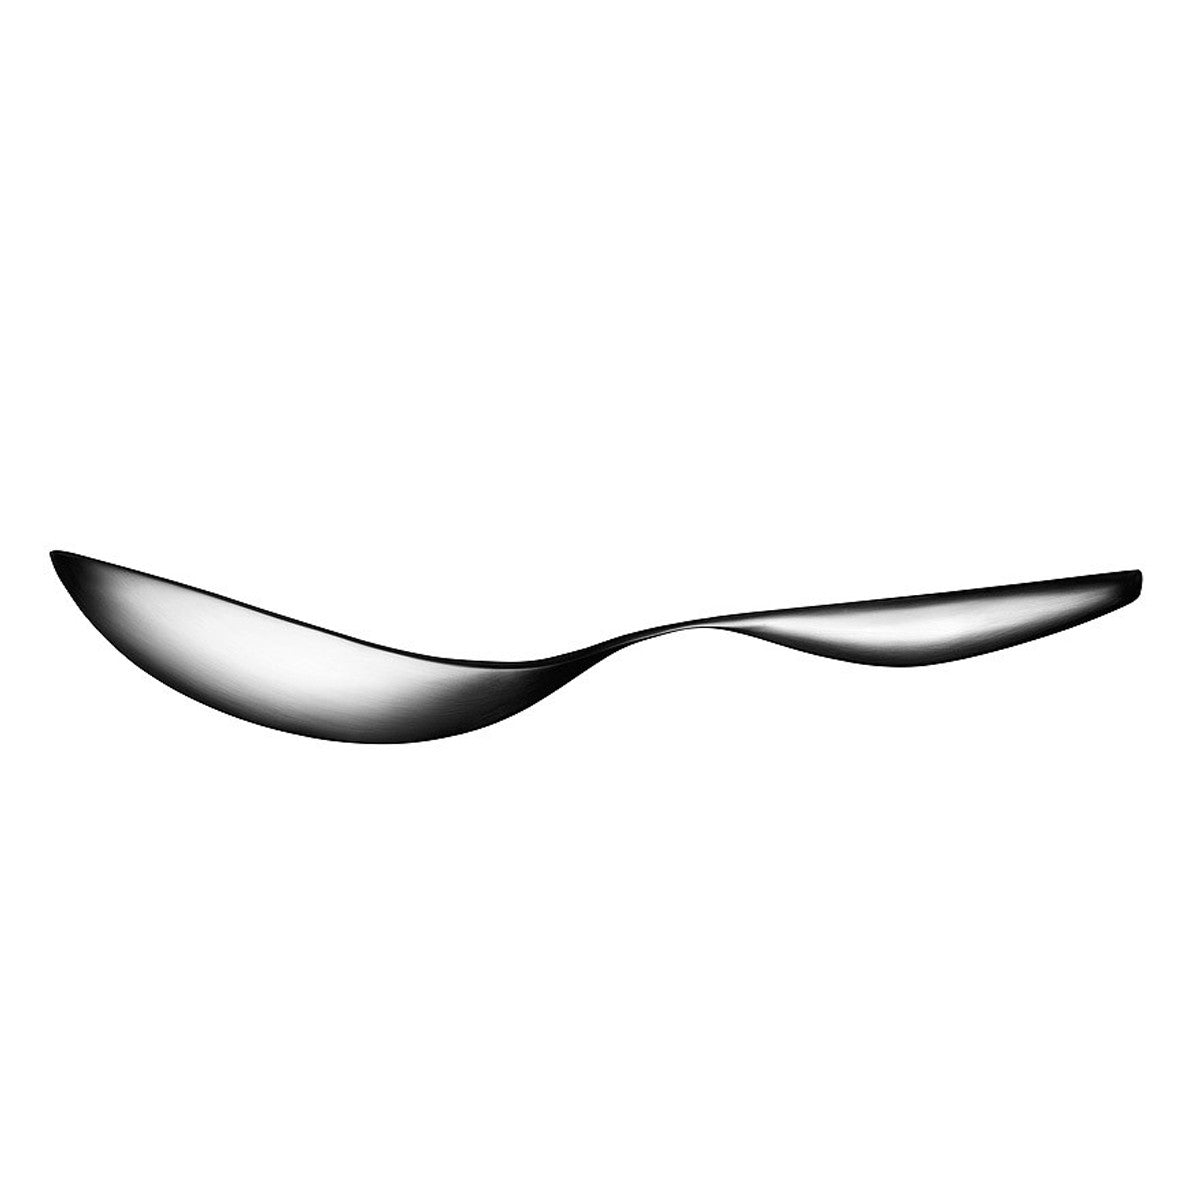 Citterio Serving Spoon Medium